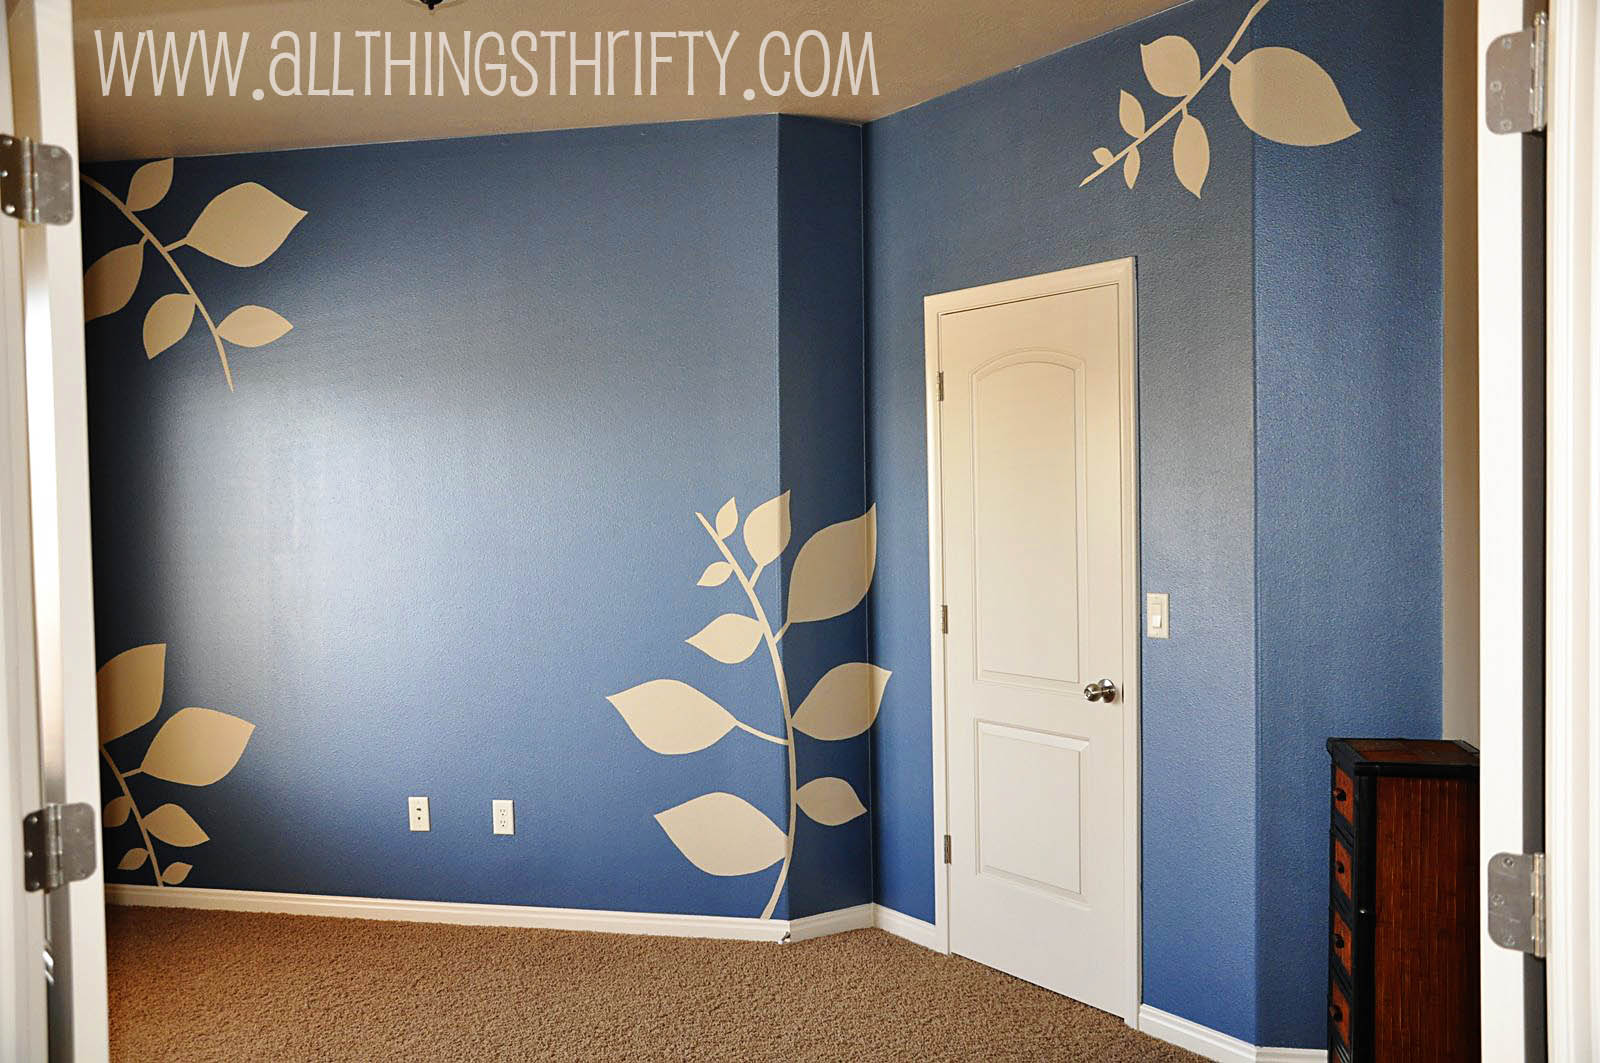 1000 ideas about painters tape design on pinterest painters tape tape wall and wall painting stencils - Paint Designs On Walls With Tape Ideas